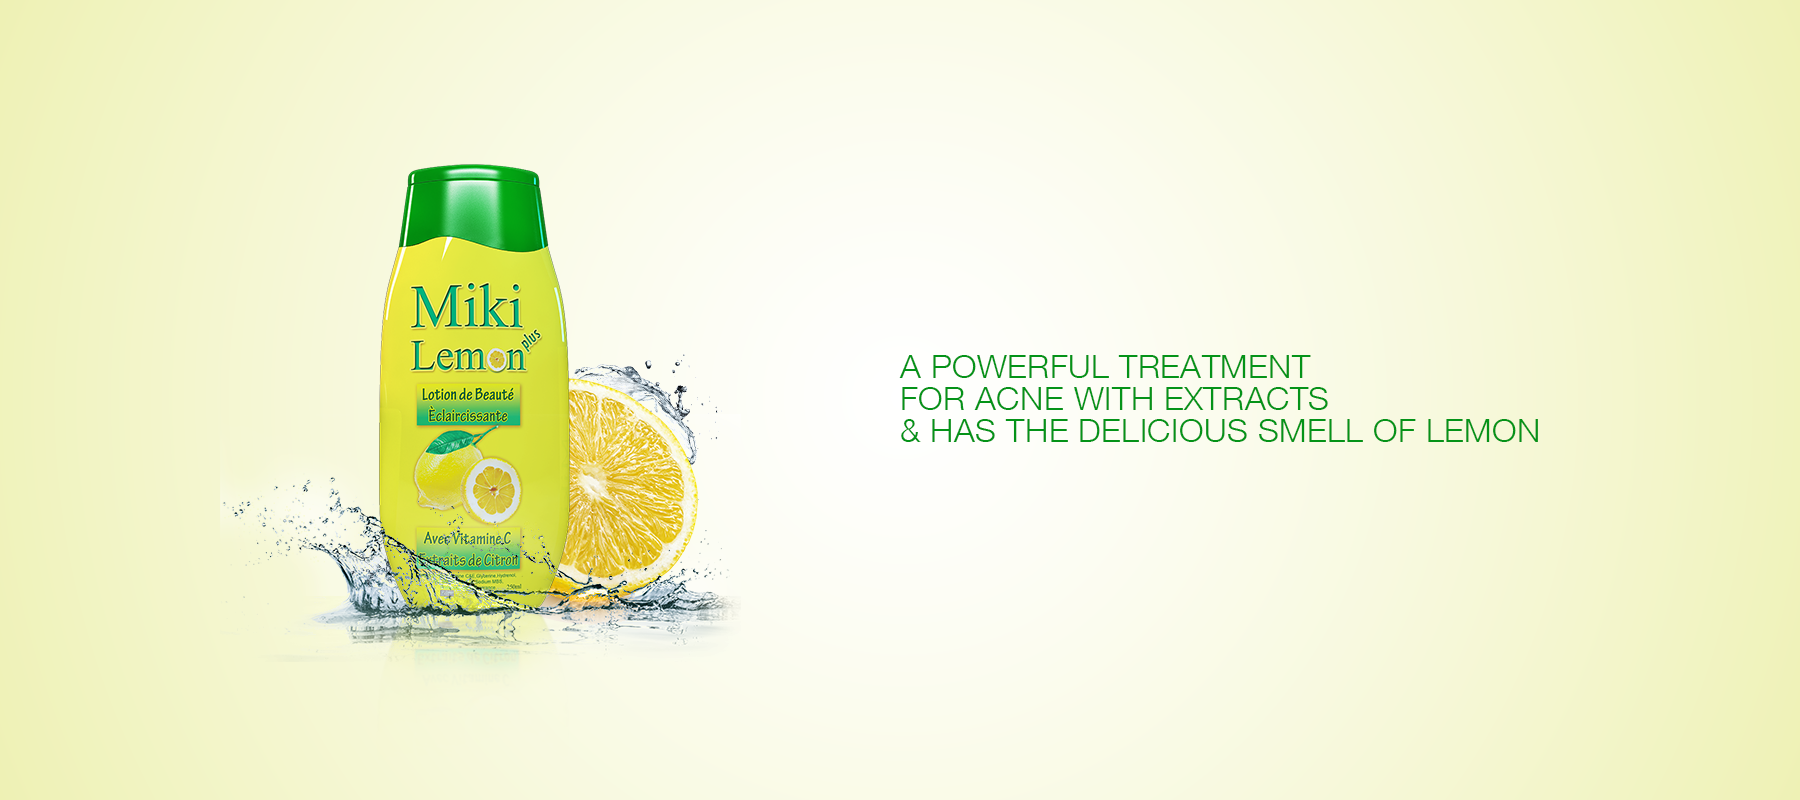 Banner of Miki Lemon Products